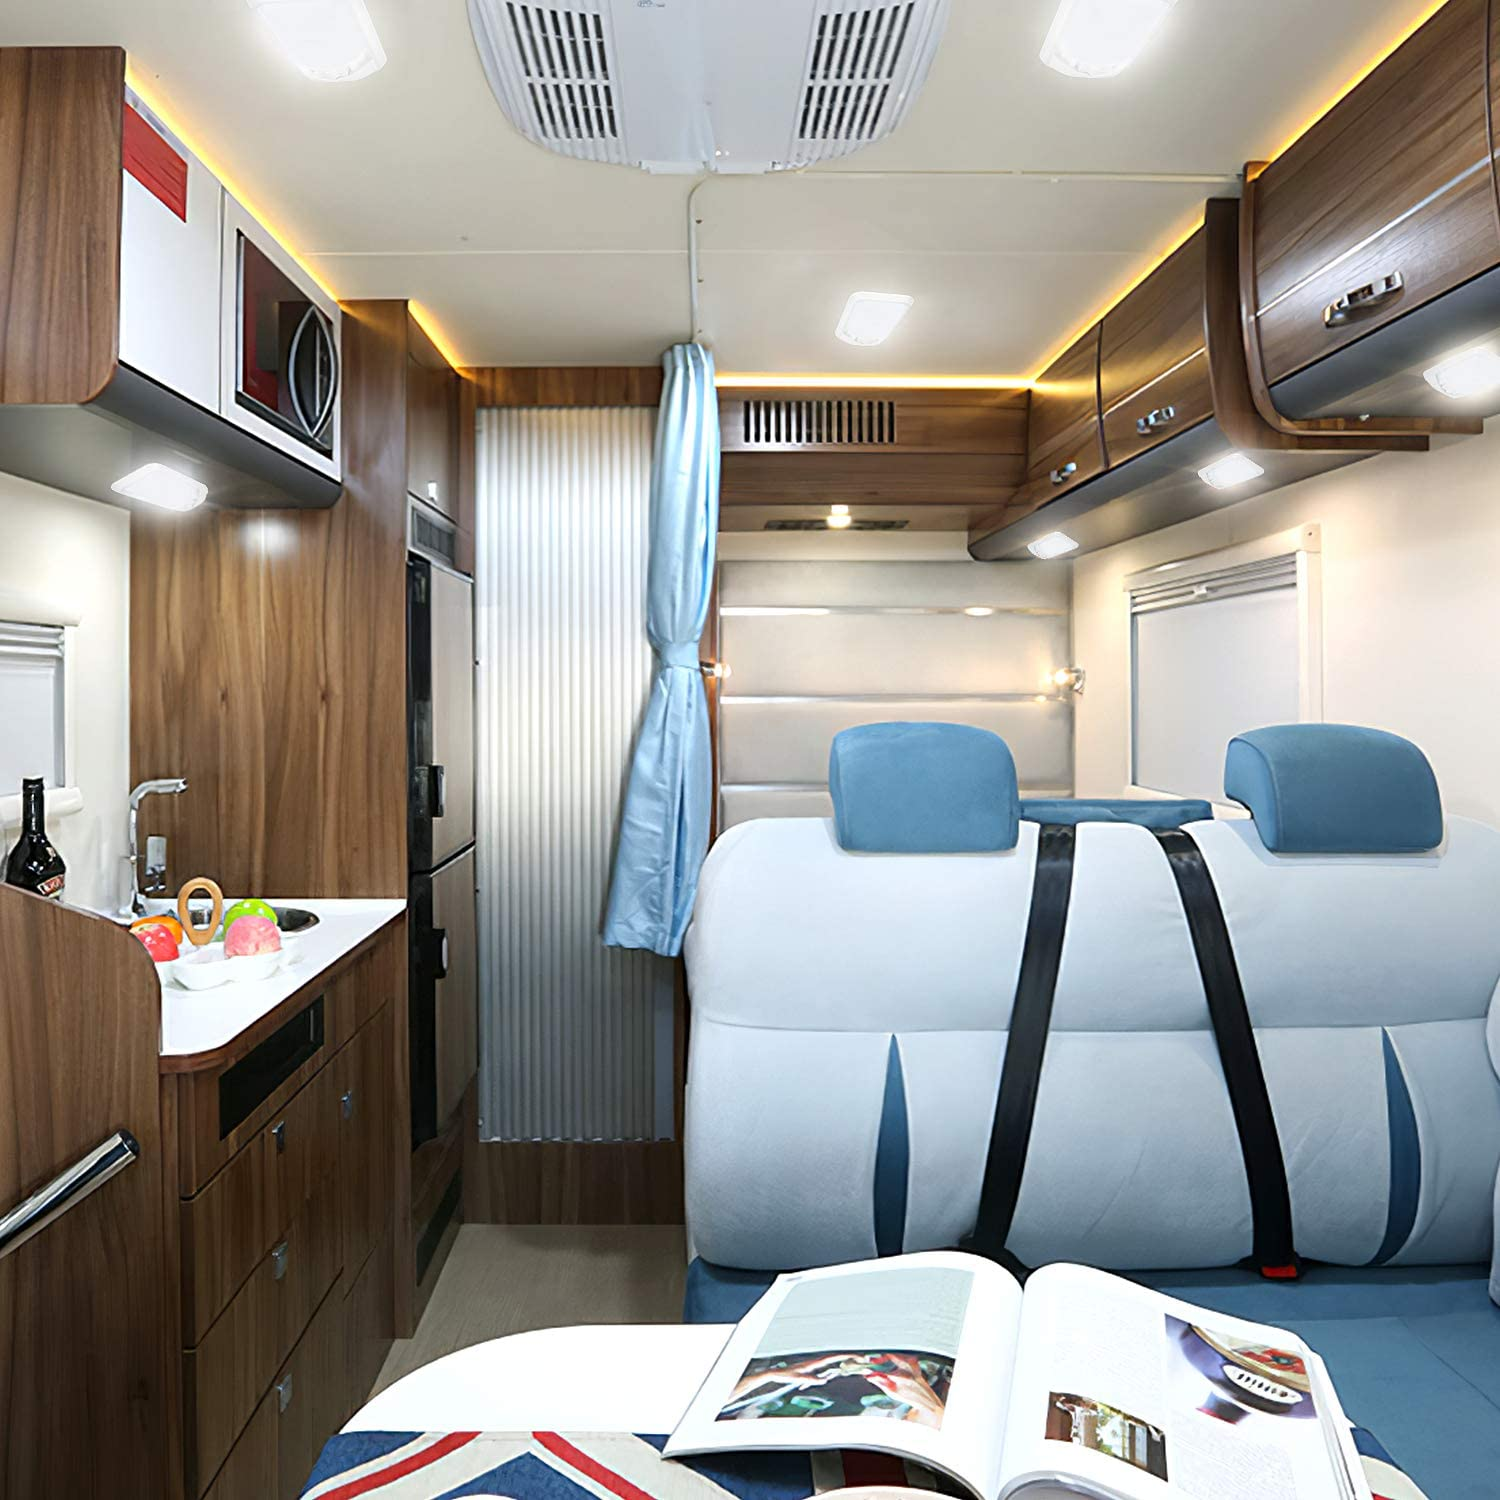 do you have any tips about rv interior lighting?